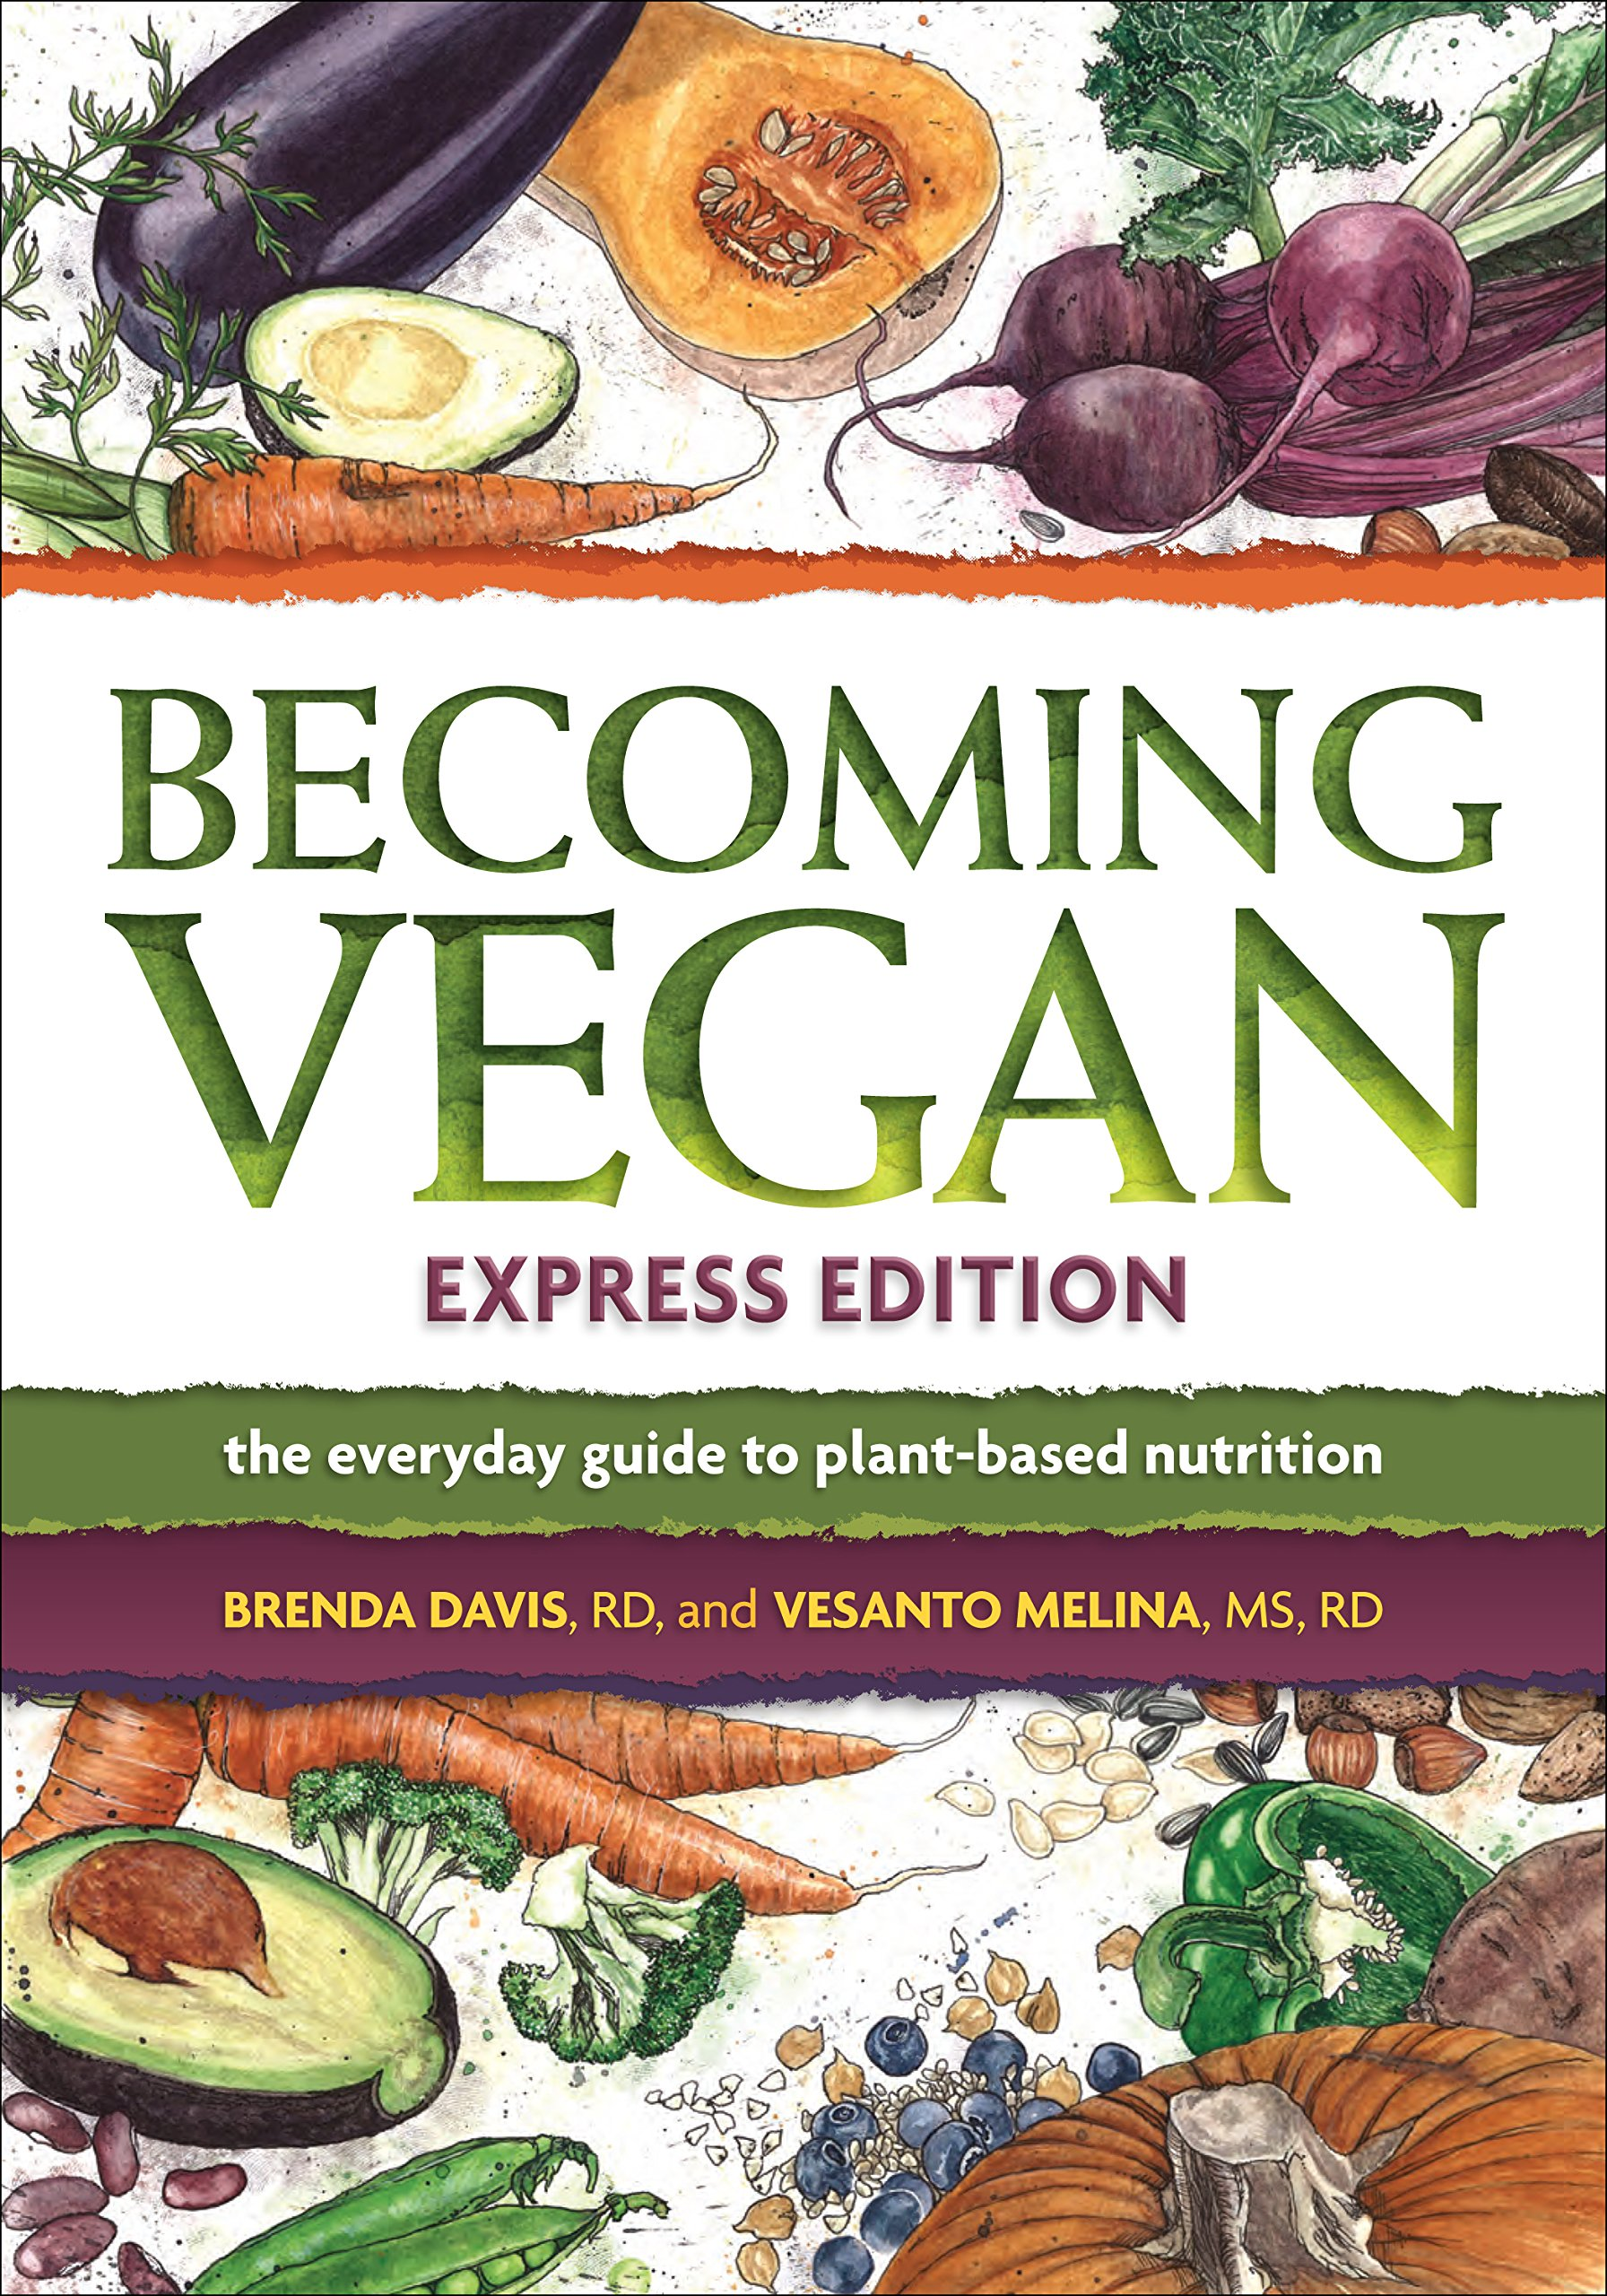 Becoming Vegan, Express Edition: The Everyday Guide to Plant-based Nutrition pdf epub